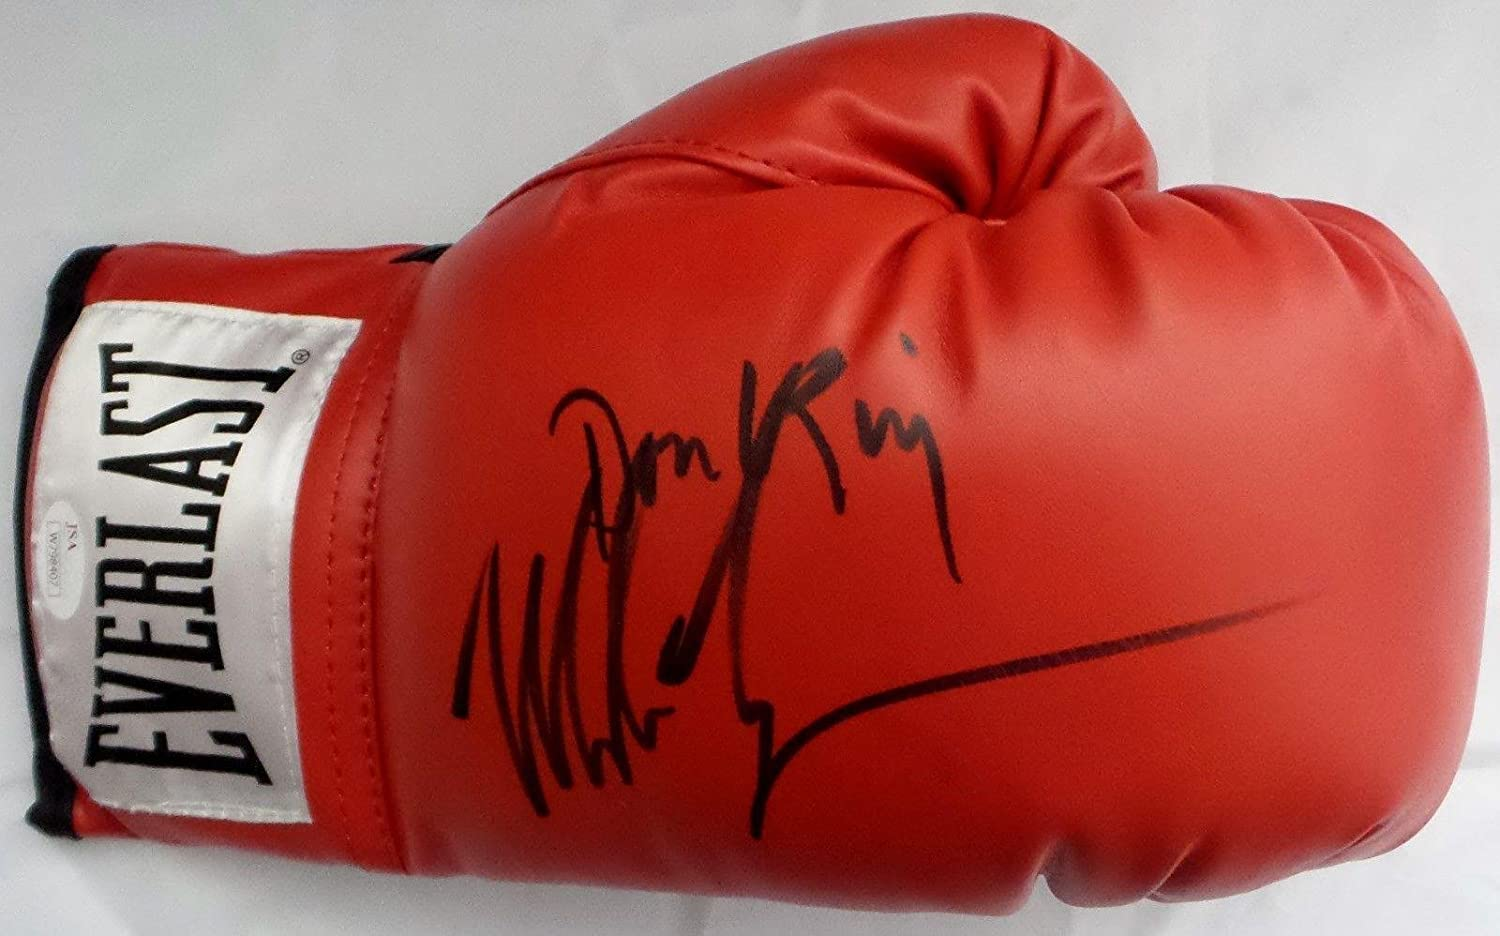 Mike Tyson Don King Signed Autographed Red Everlast Boxing Glove Authentic 4 - JSA Certified - Autographed Boxing Gloves